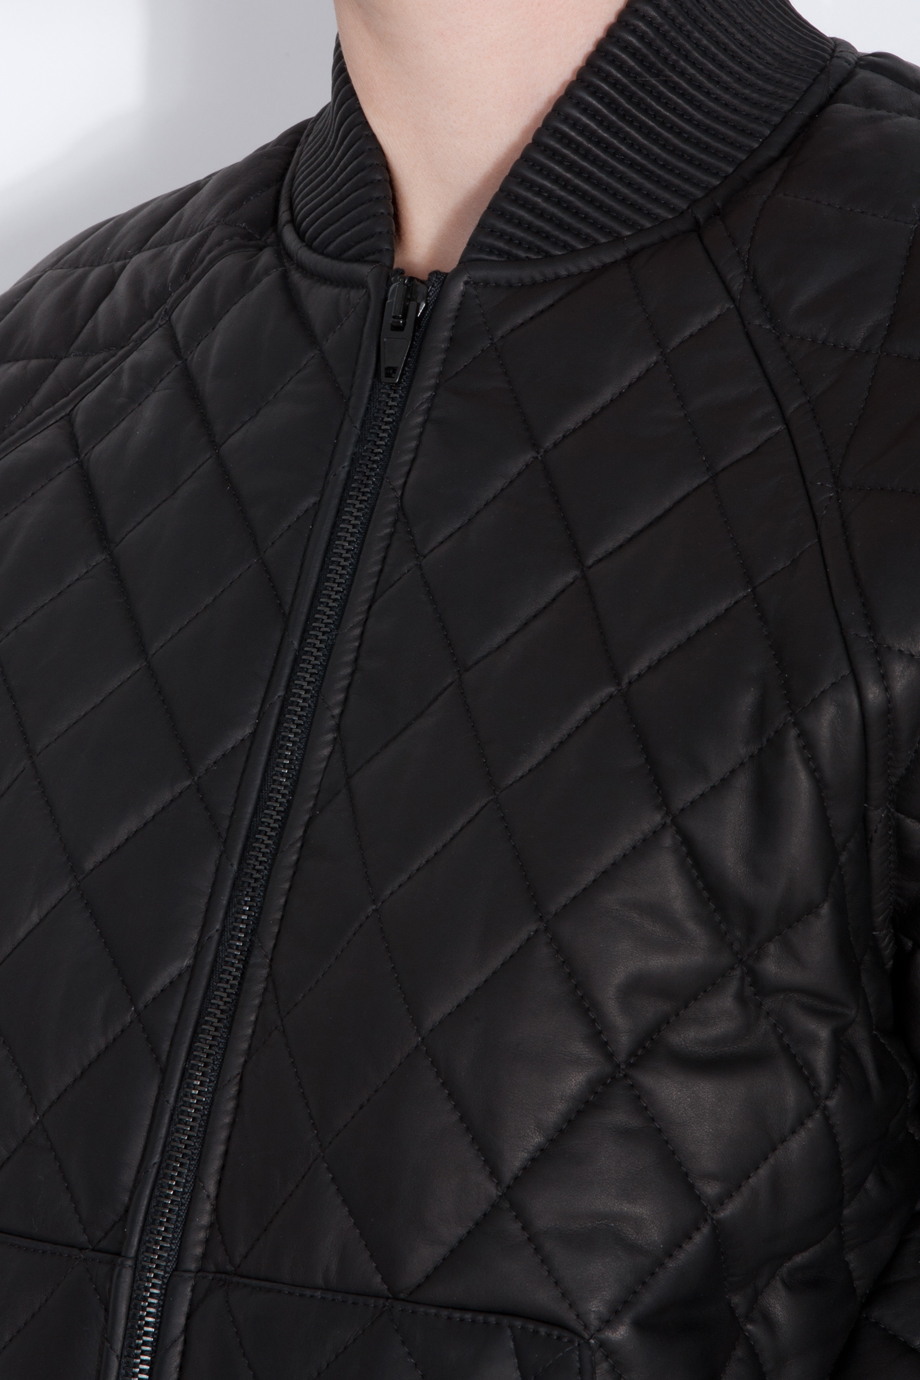 Quilted Leather Bomber Jacket Men - Pl Jackets